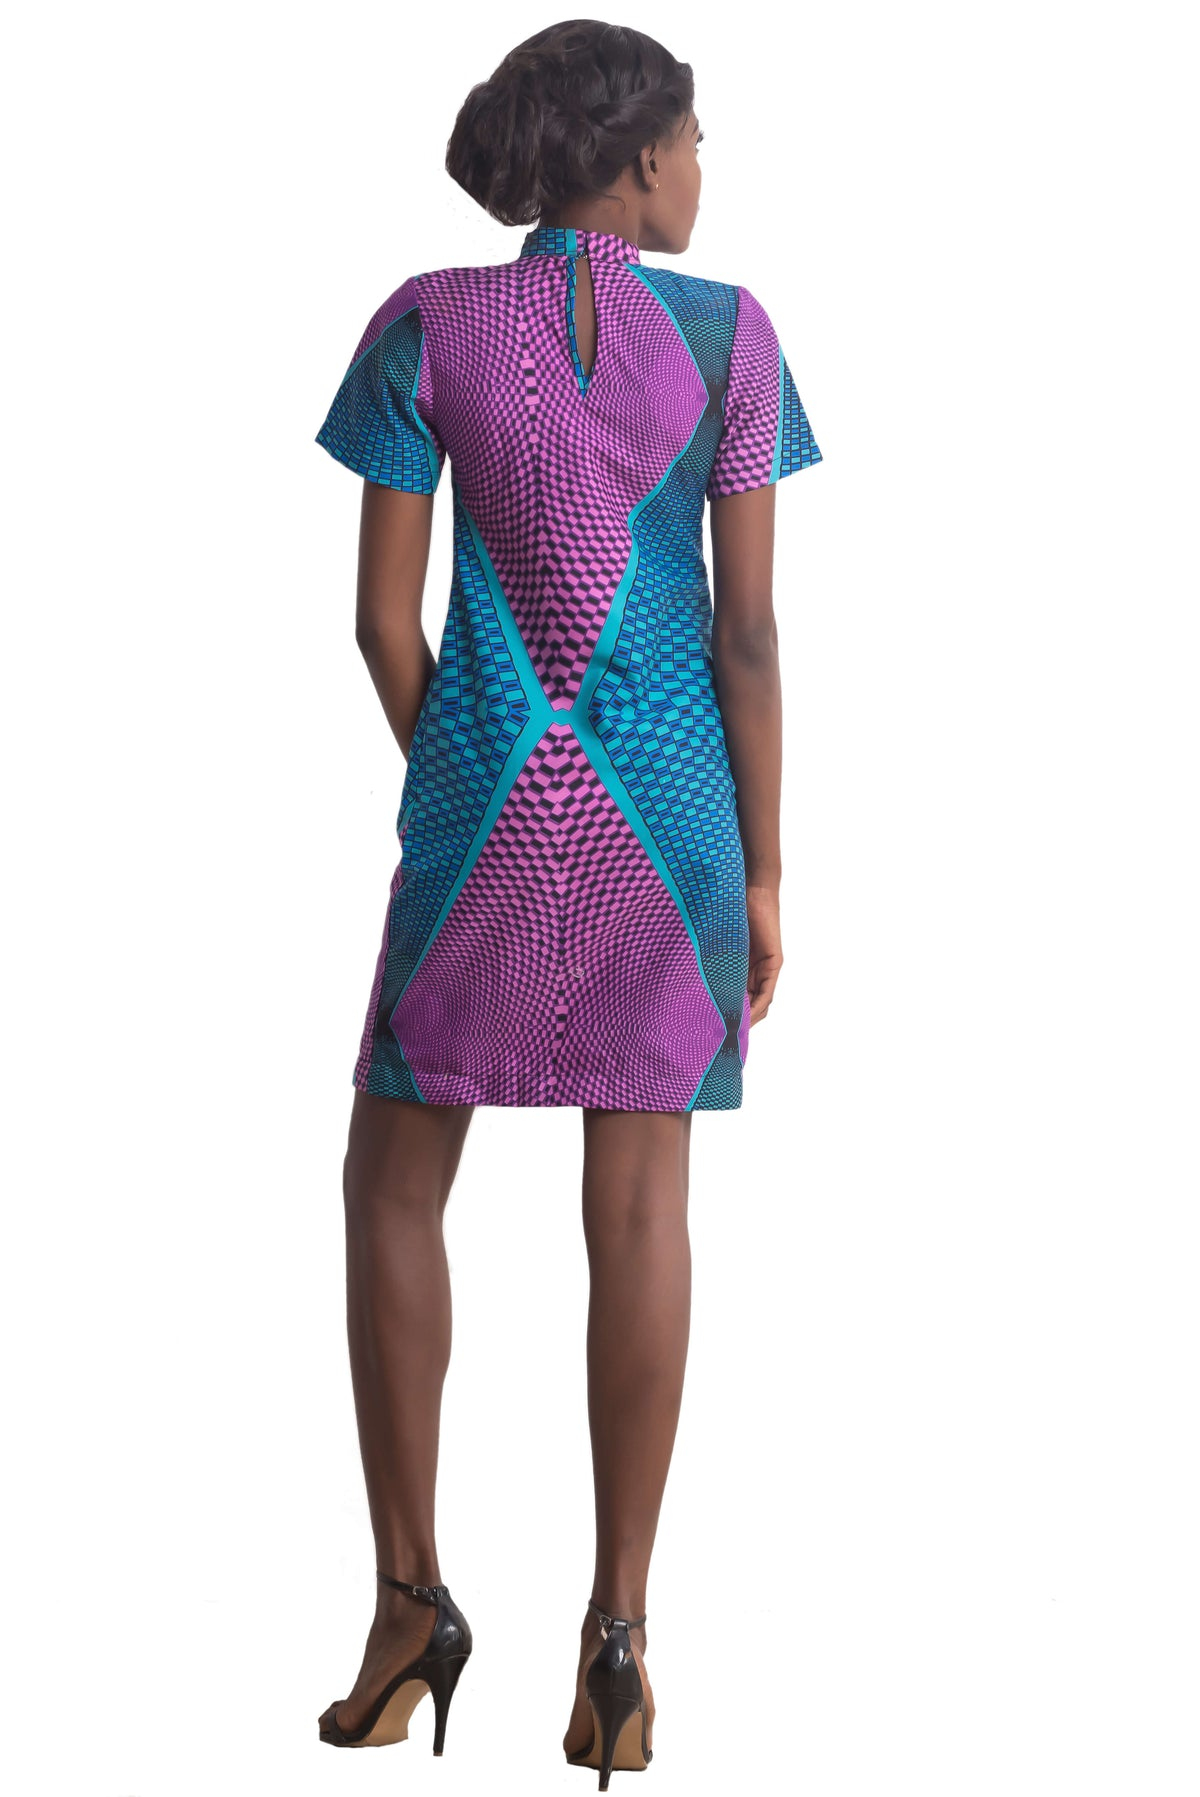 Ankarage Ankara African Print Adaure Purple Blue Choker A Line Shift Dress Women